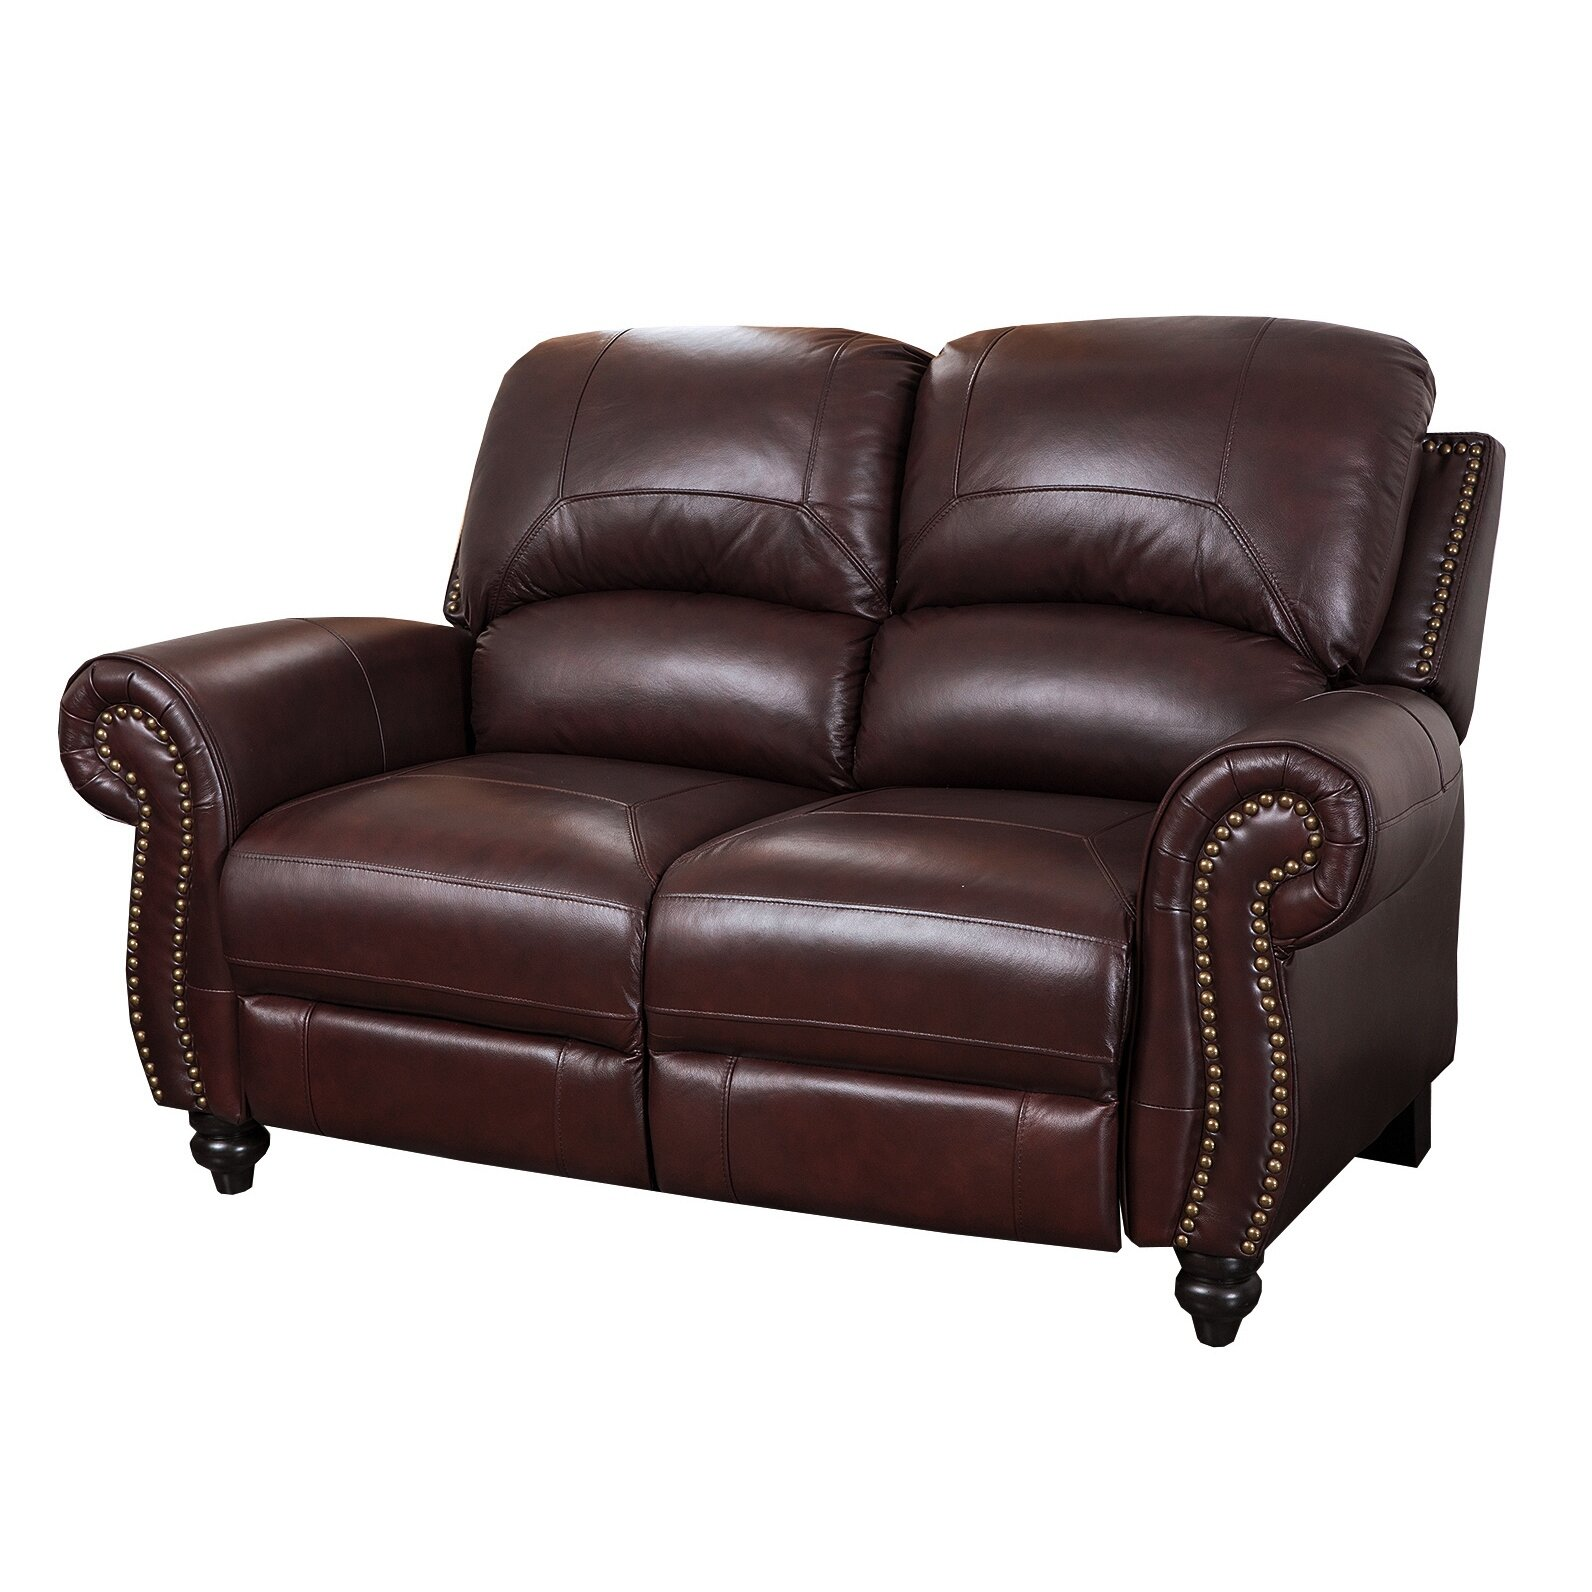 Darby home co kahle leather reclining loveseat reviews wayfair Leather reclining sofa loveseat